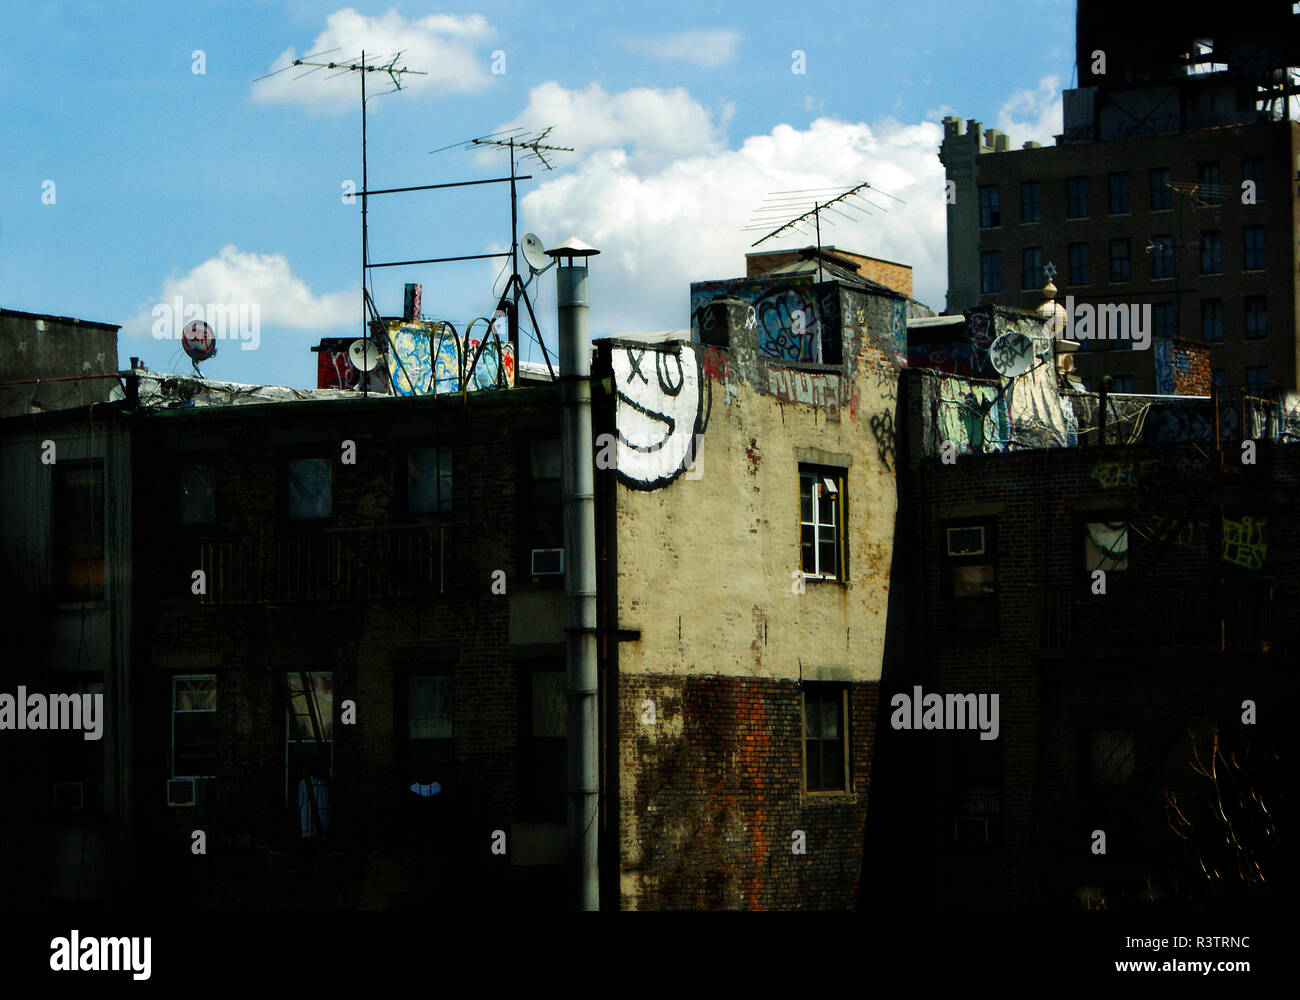 New York, USA - October 5, 2018: Old buildings in deplorable condition in the suburbs of New York. - Stock Image